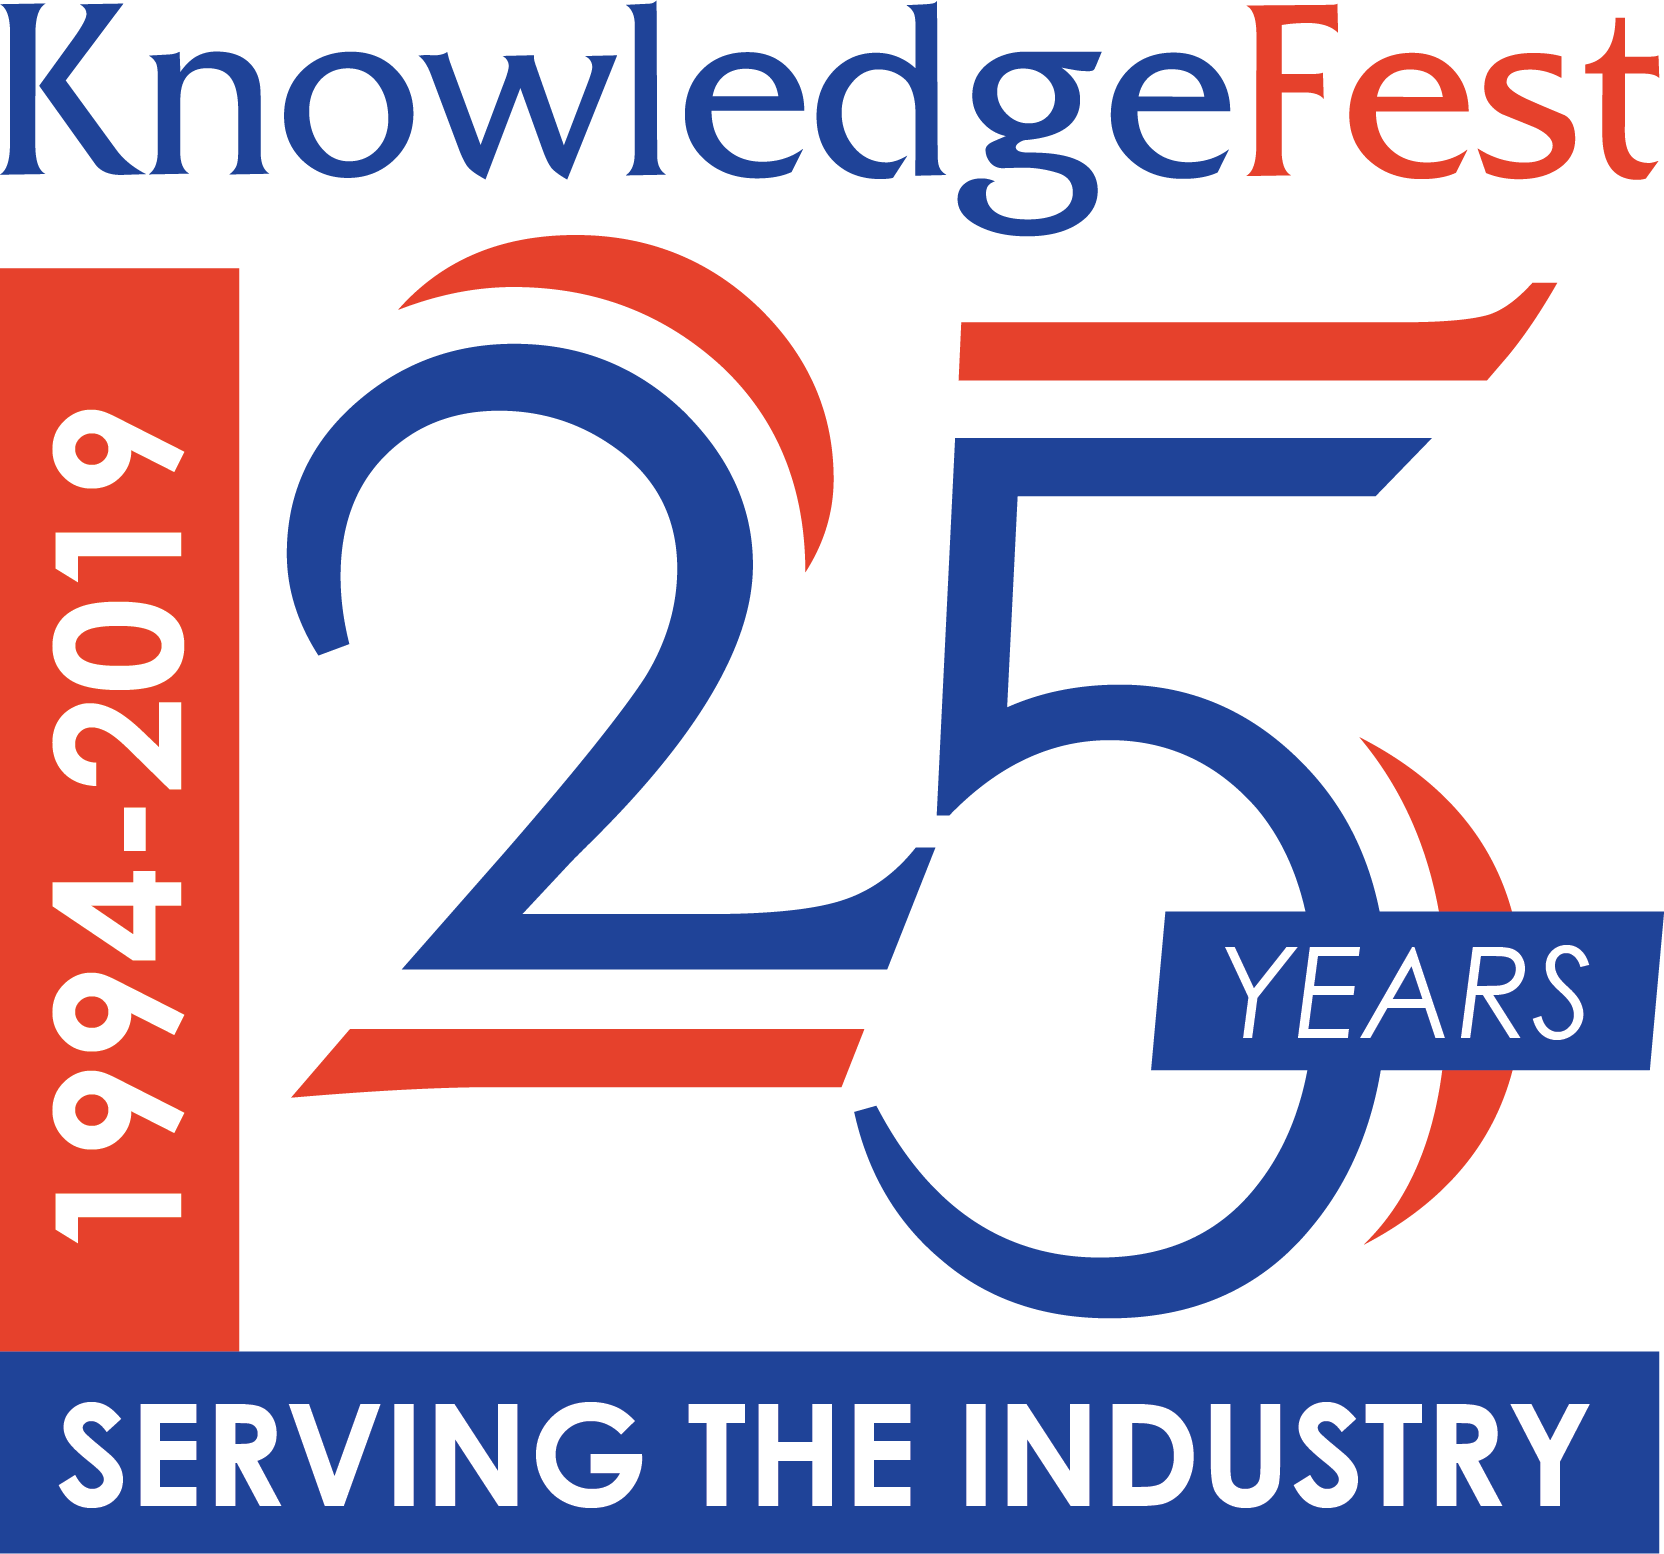 KnowledgeFest 25 Logo